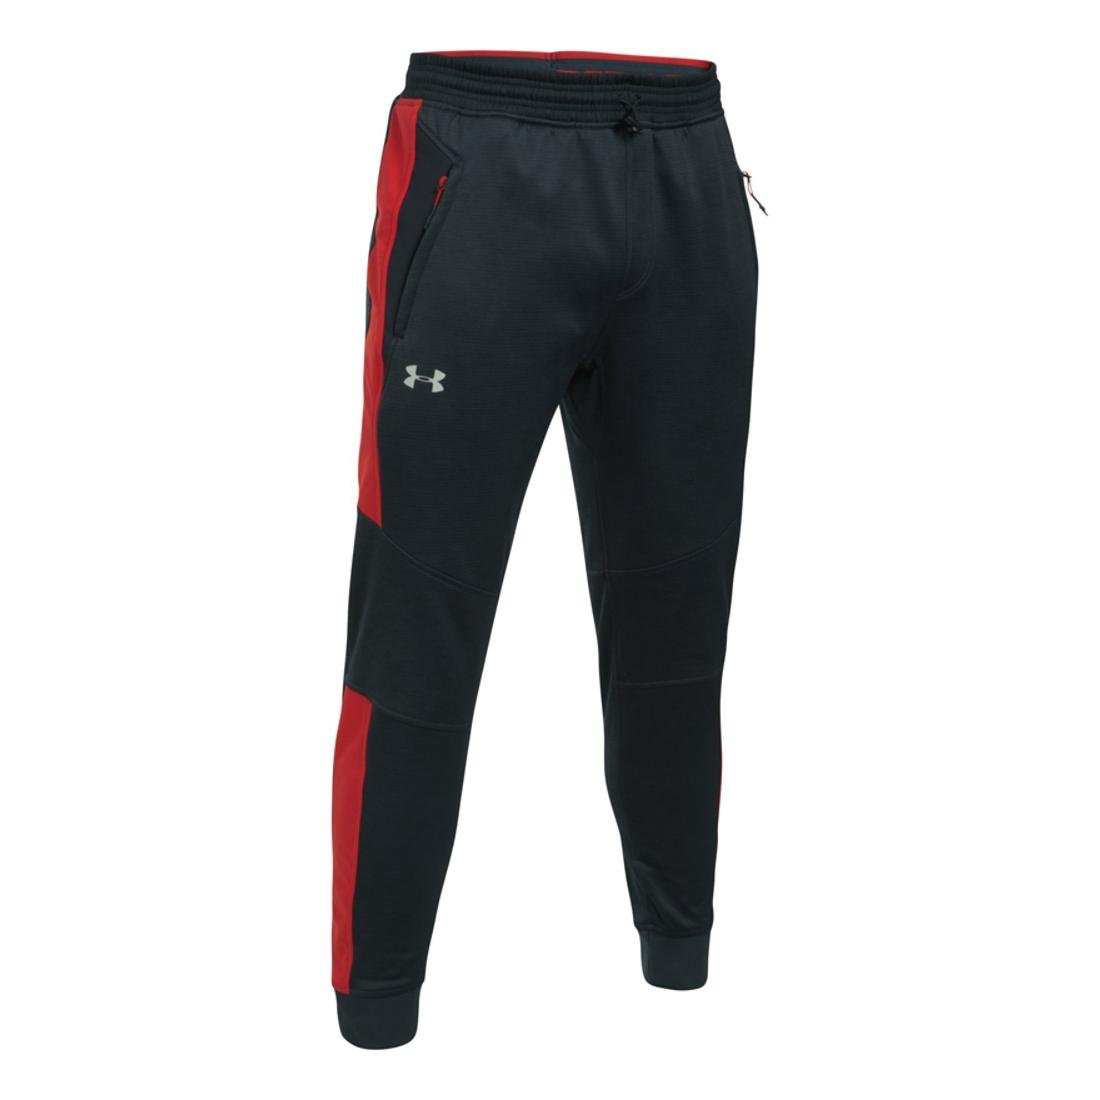 Under Armour Men's Coldgear Reactor Fleece Tapered Pants,Anthracite (016)/Silver, XXXX-Large by Under Armour